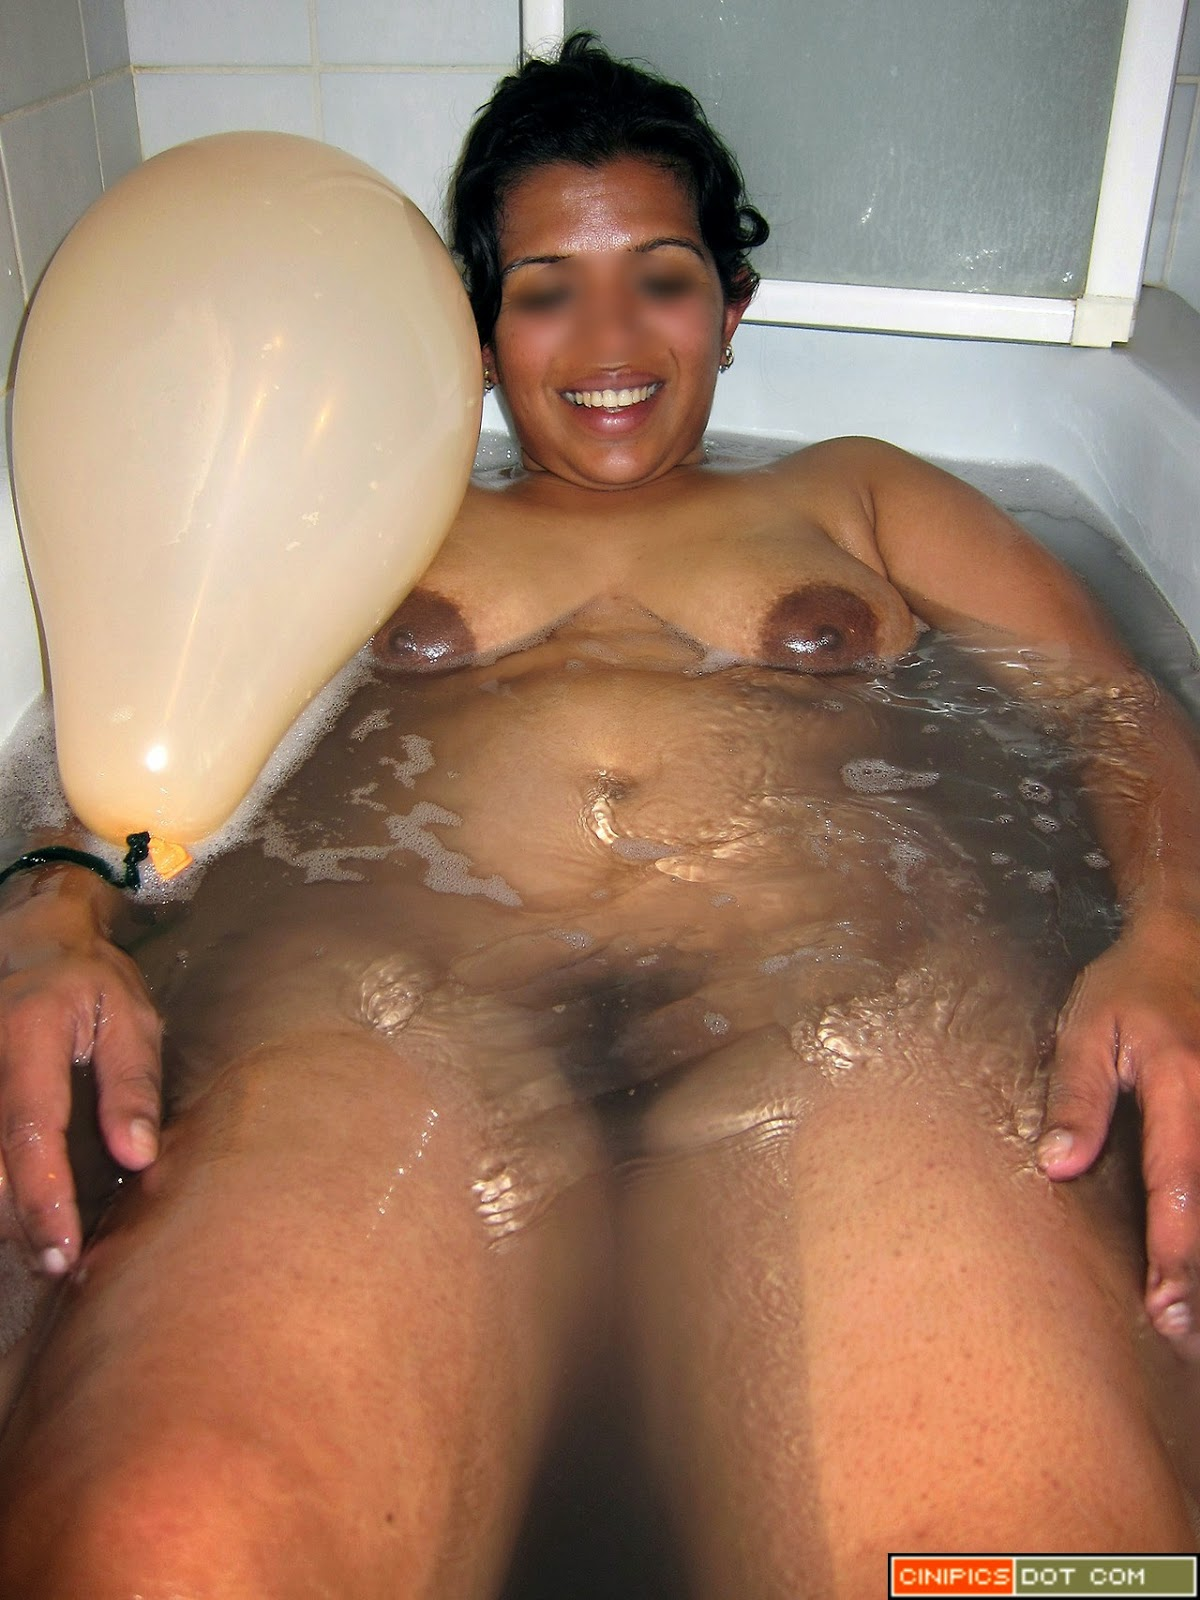 Aunty nude south